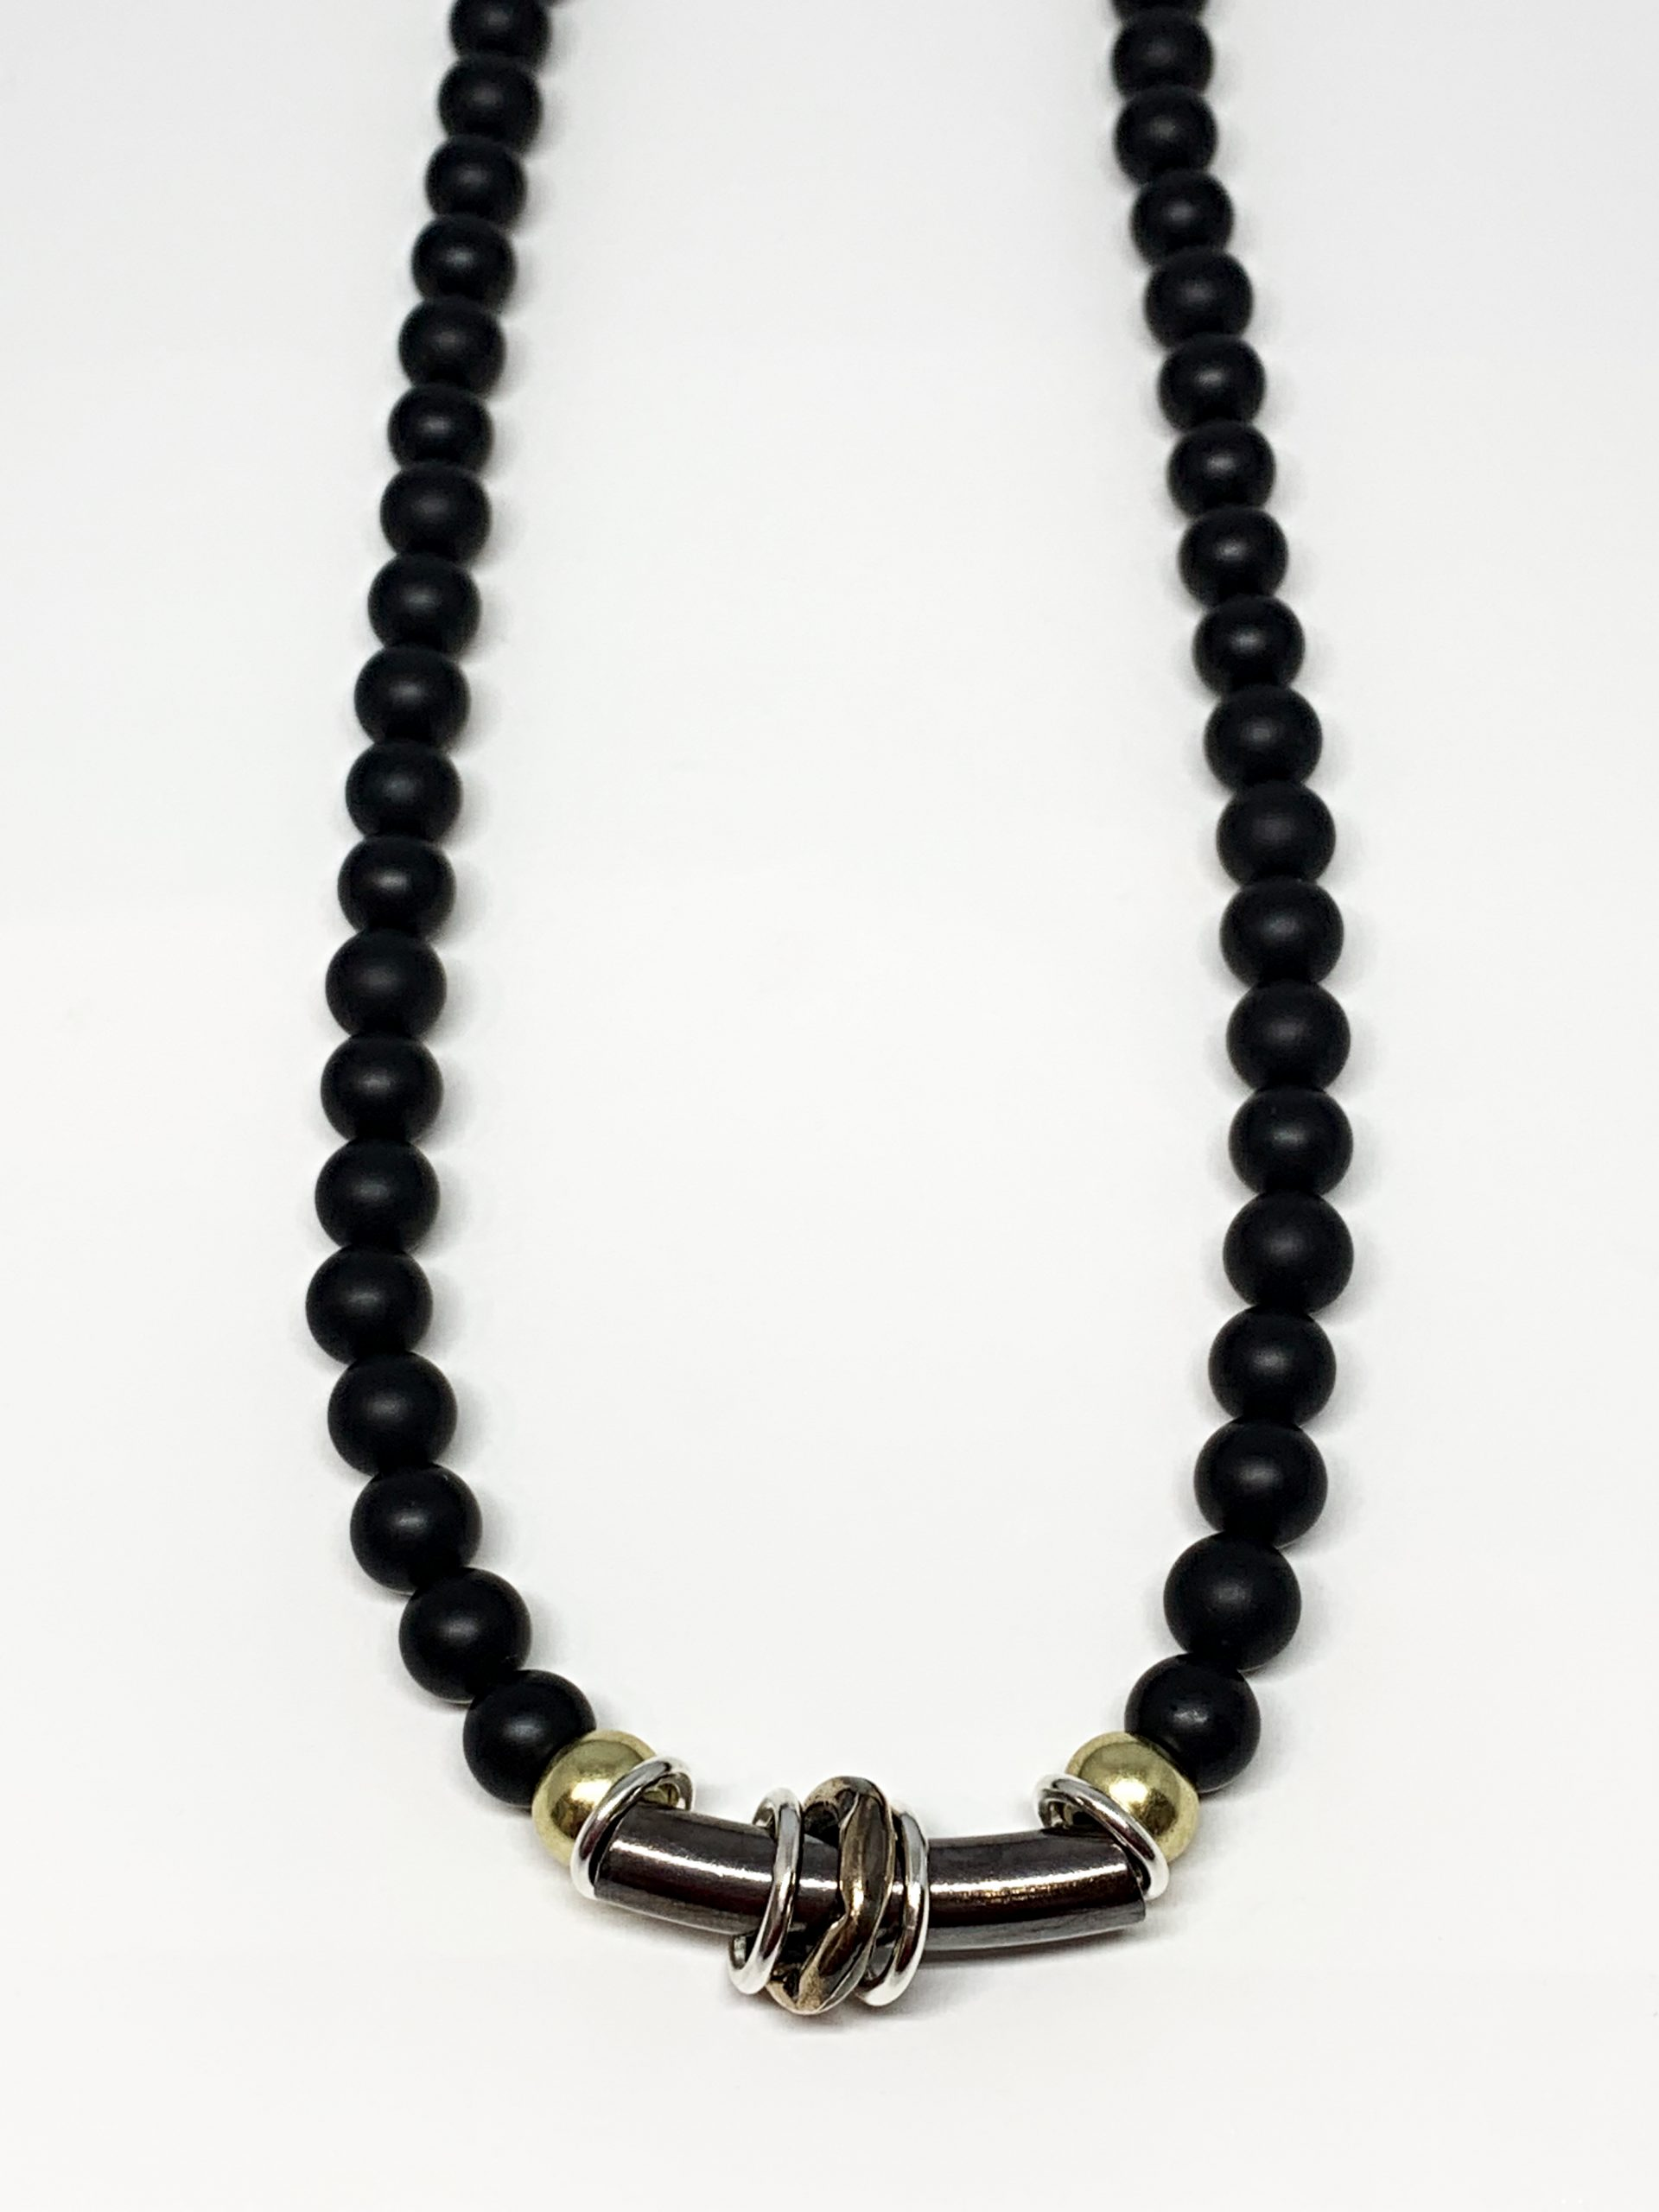 Black onyx, bronze, and sterling silver necklace by Karyn Chopik | Effusion Art Gallery + Cast Glass Studio, Invermere BC